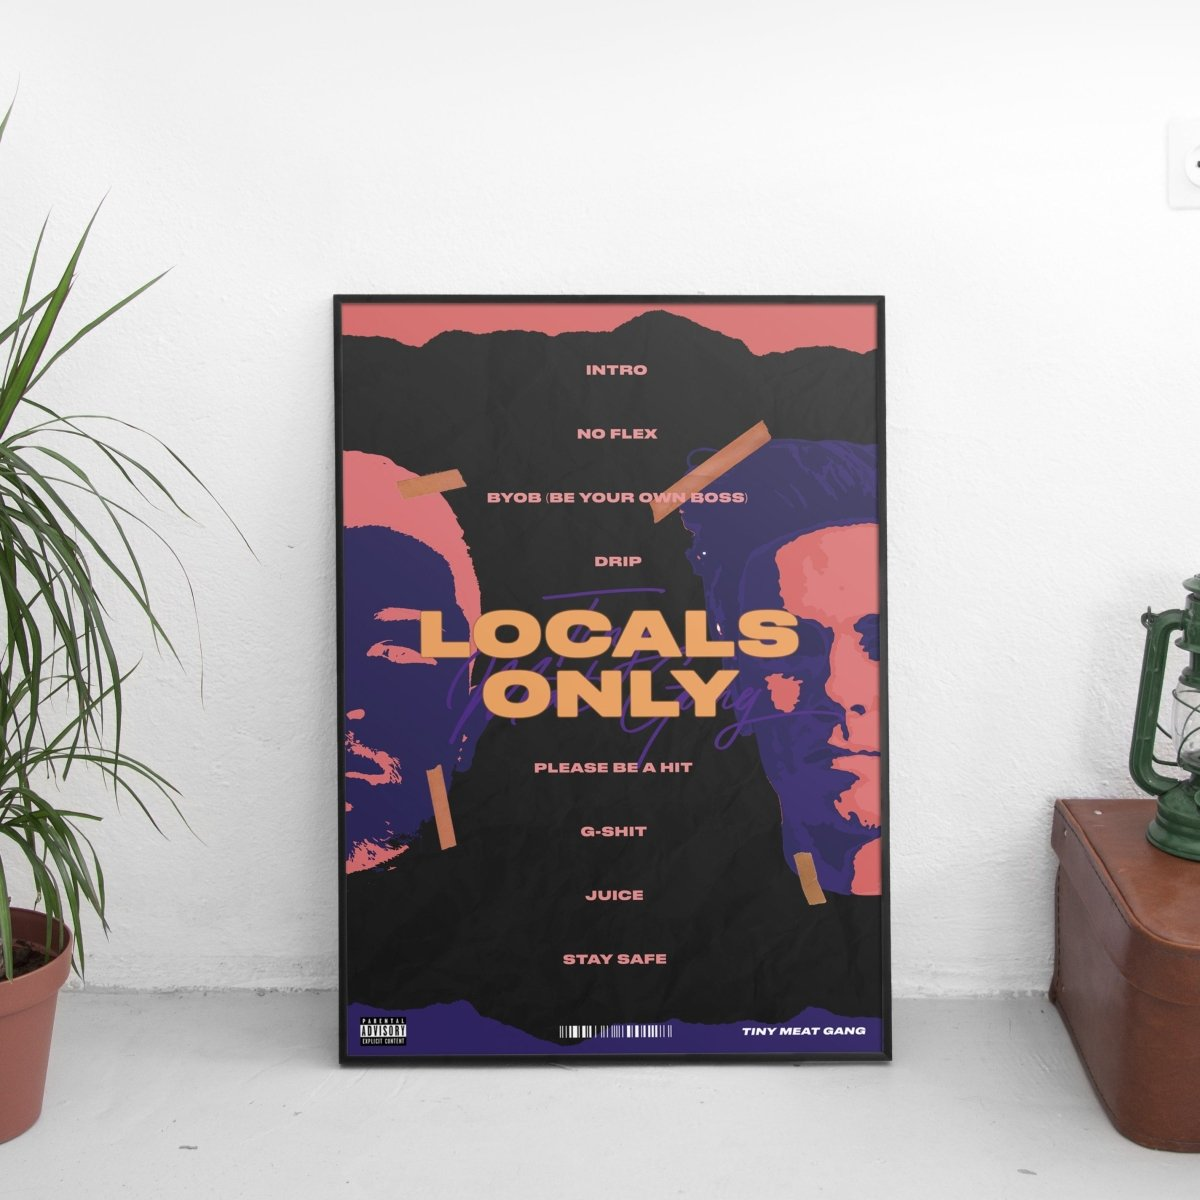 Tiny Meat Gang (TMG) - Locals Only Poster